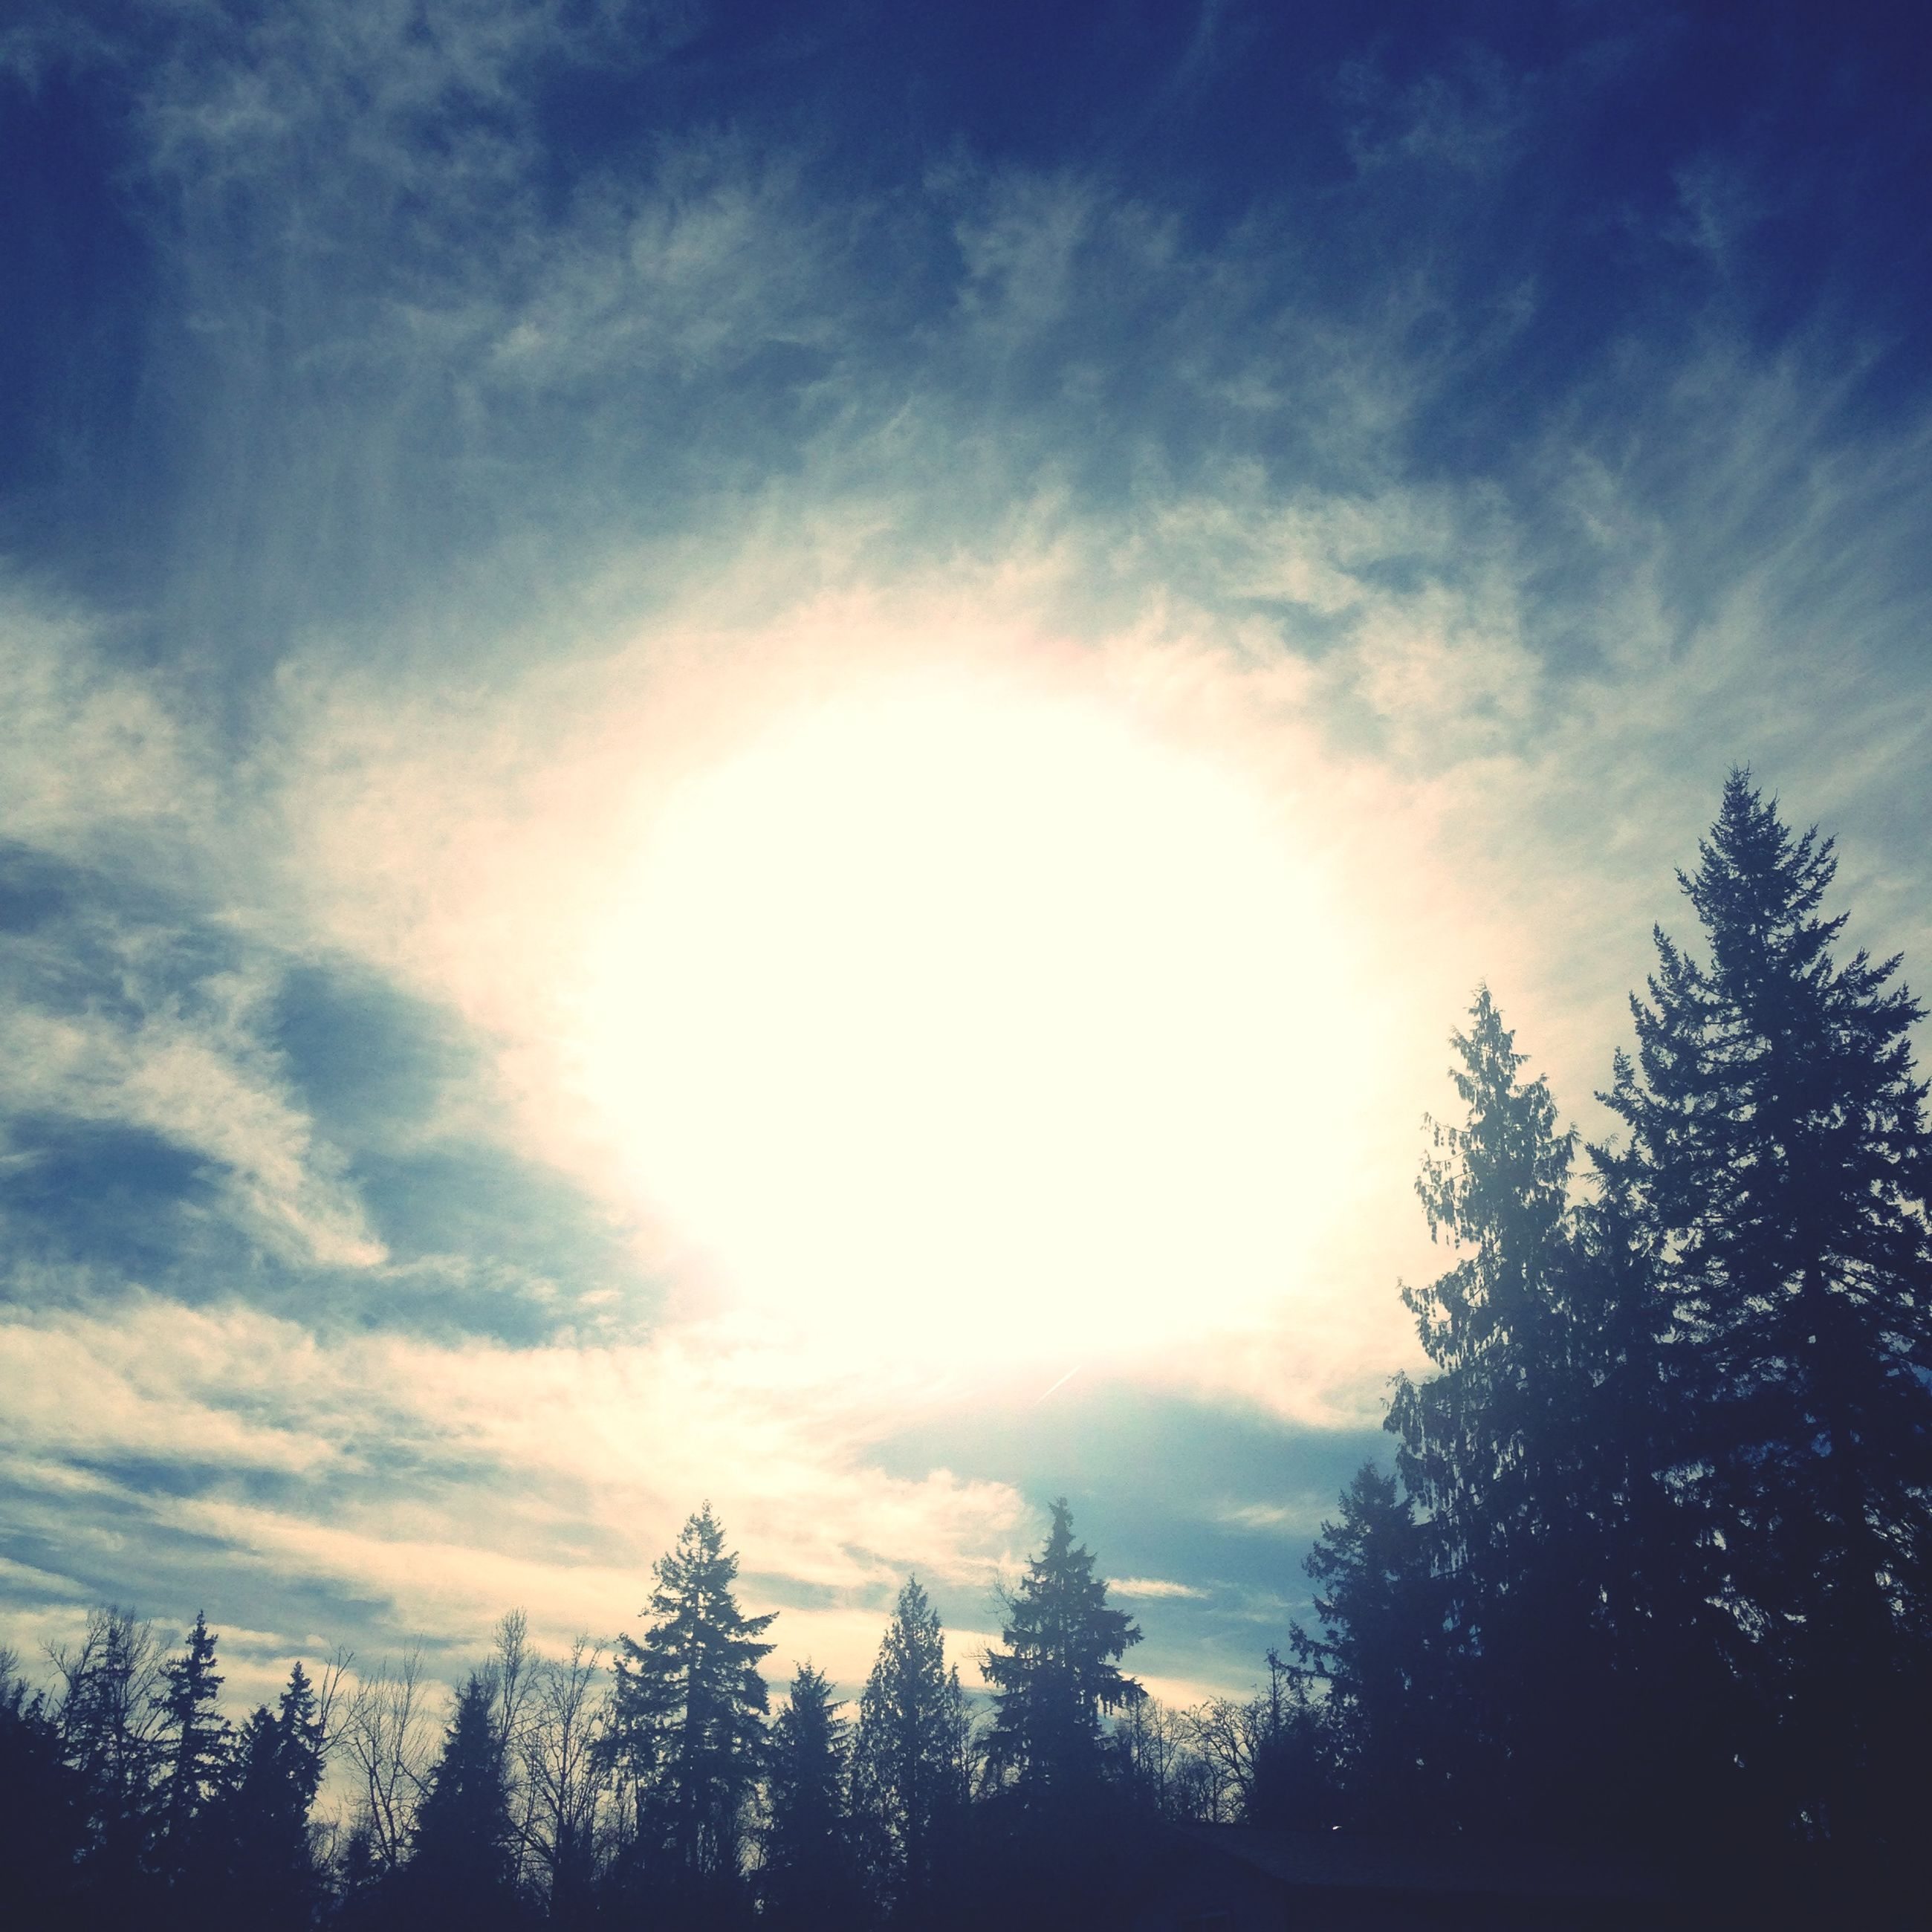 tree, sky, low angle view, tranquility, beauty in nature, cloud - sky, sun, silhouette, scenics, tranquil scene, sunbeam, nature, sunlight, cloud, cloudy, blue, idyllic, outdoors, no people, lens flare